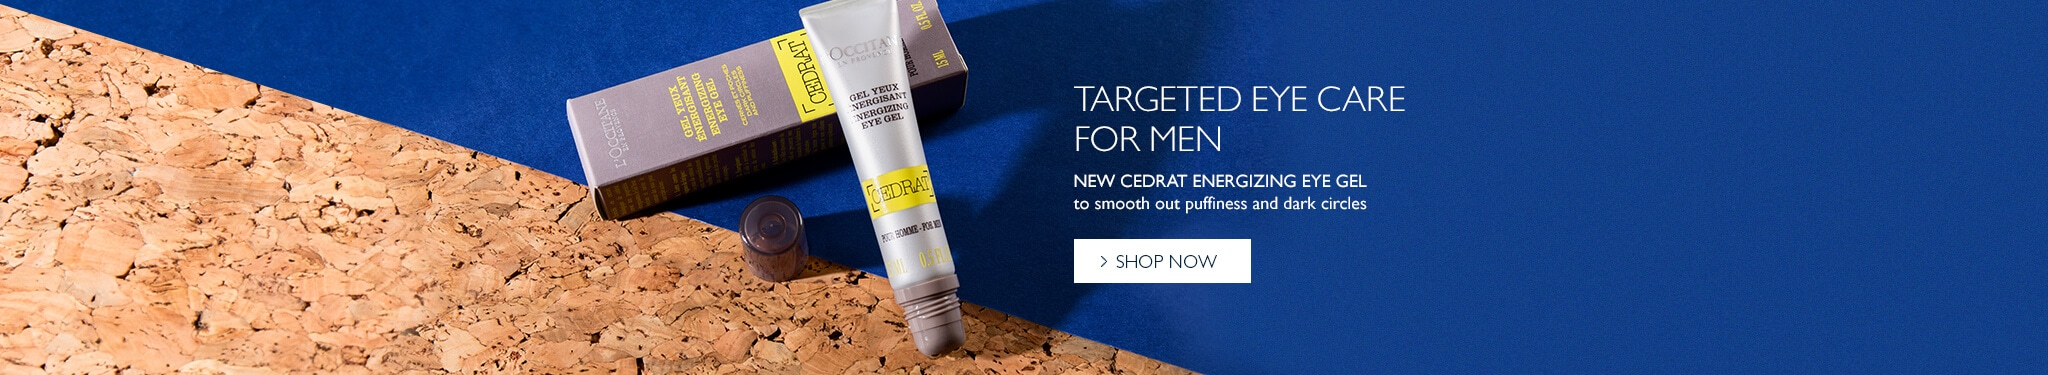 CÉDRAT ENERGIZING EYE GEL